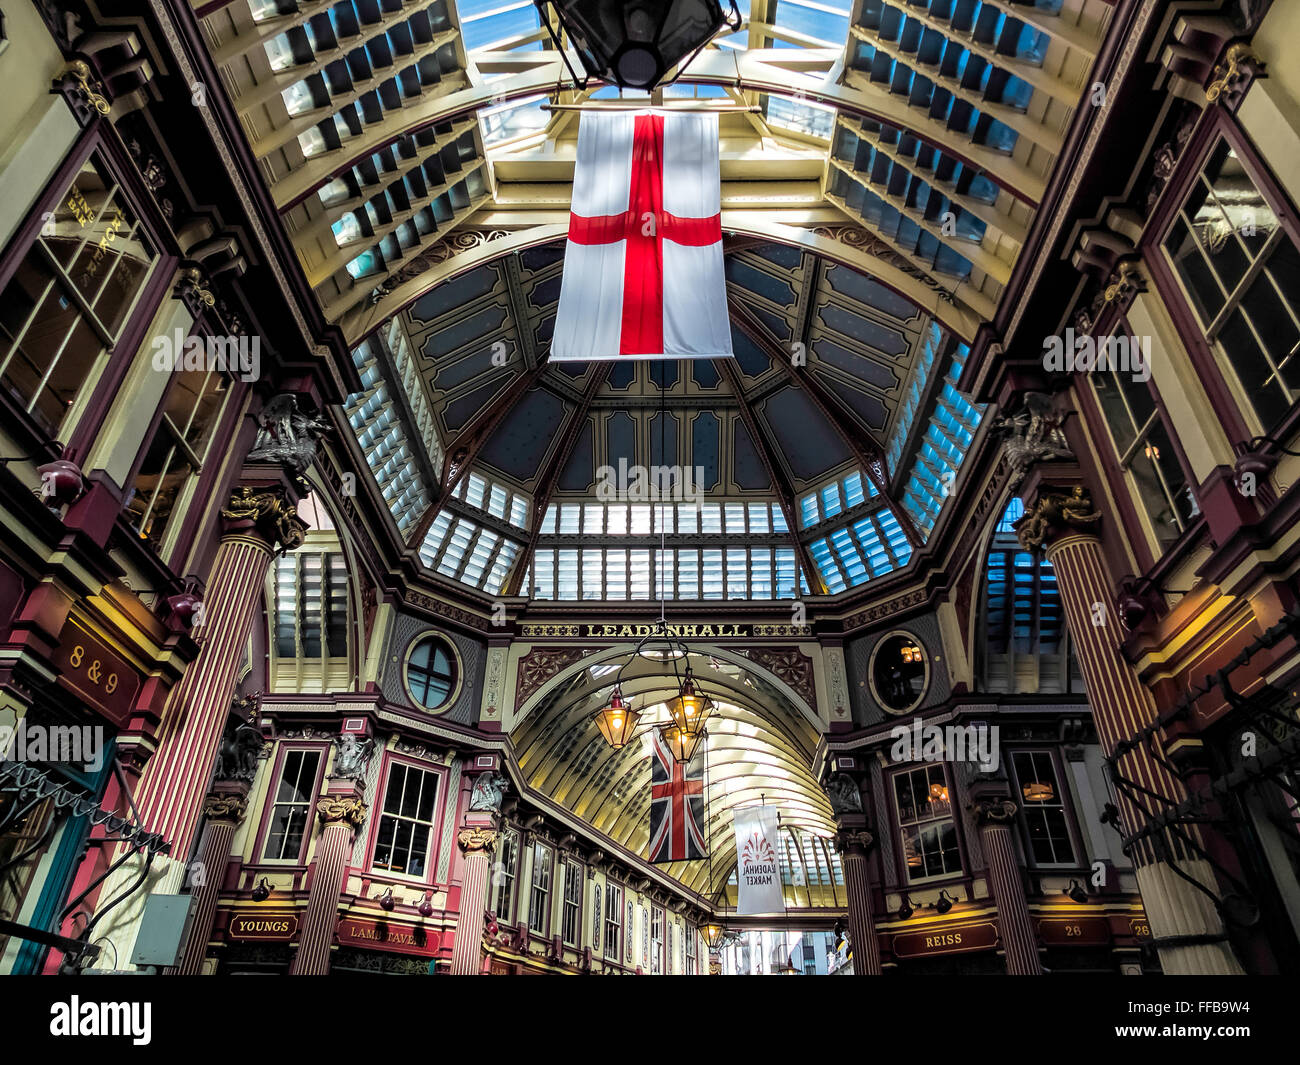 Leadenhall Market Photo Stock